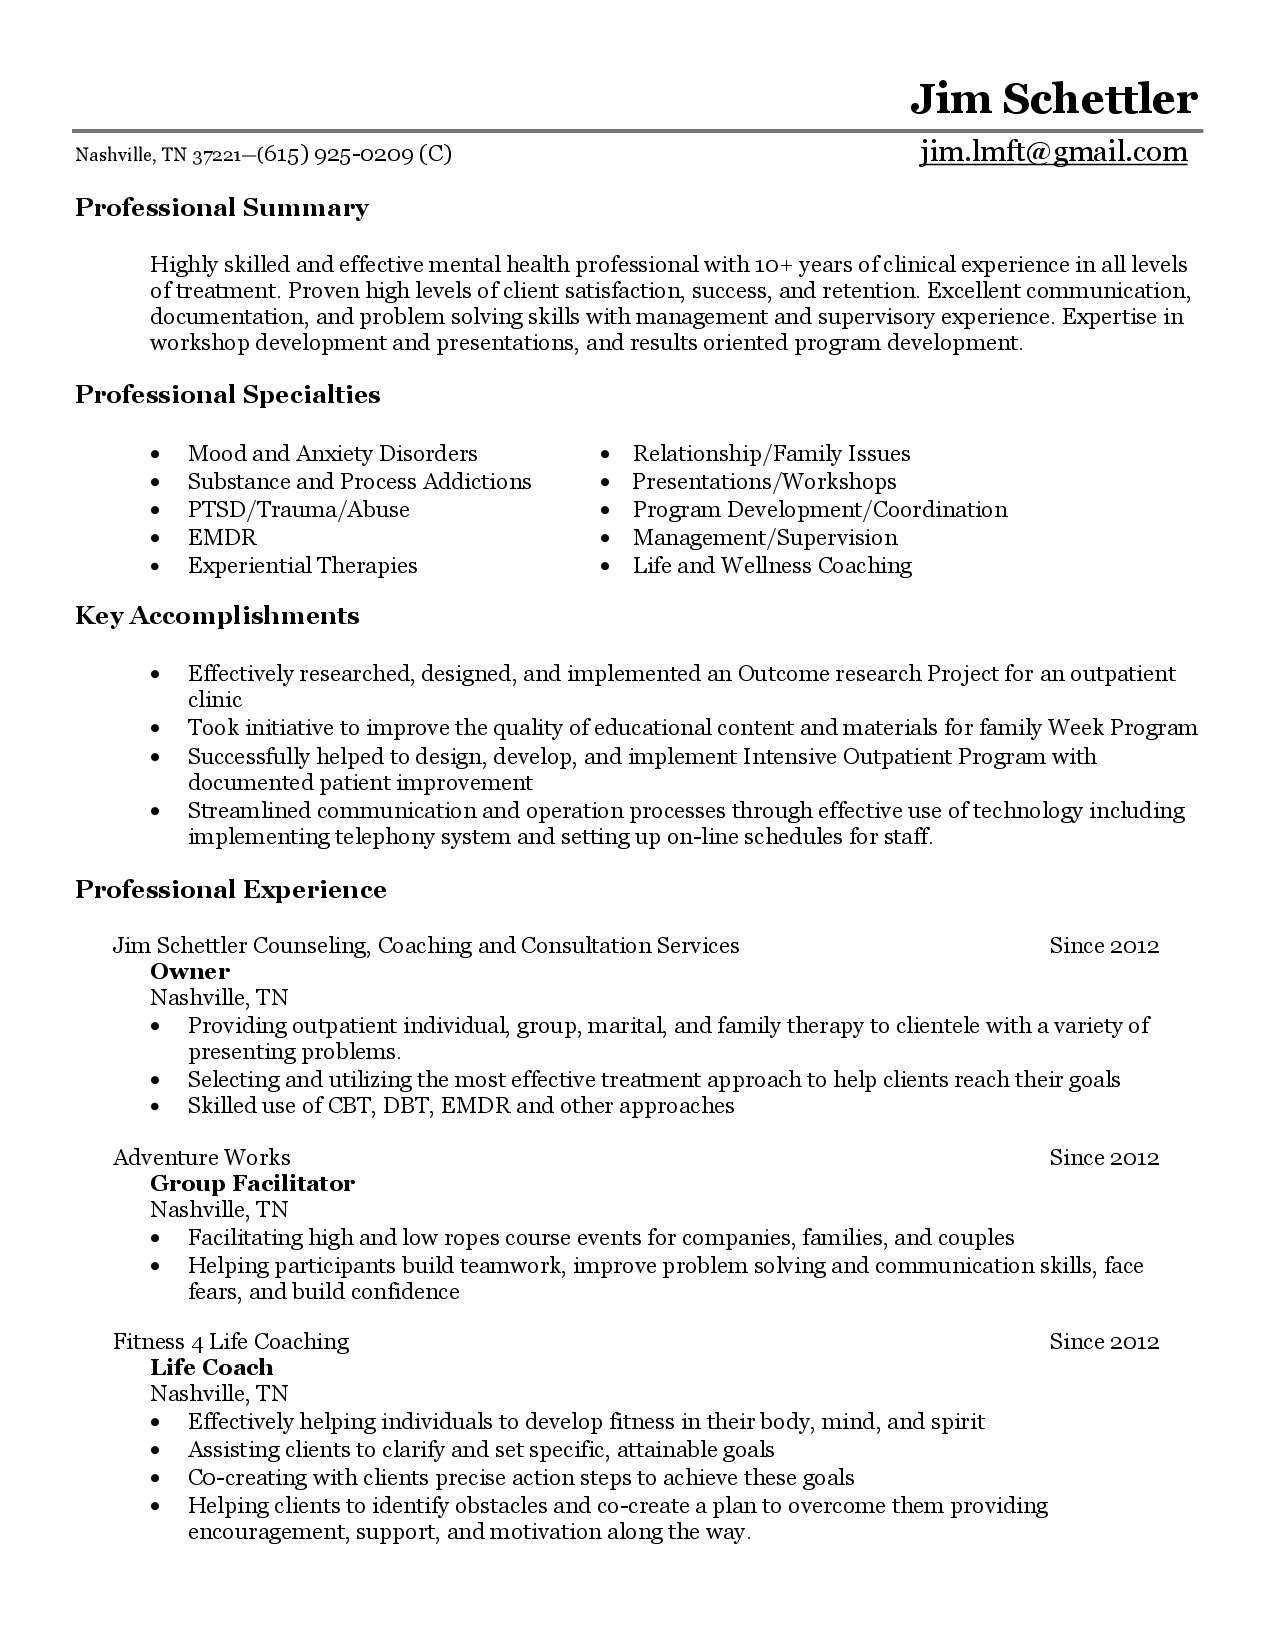 Behavioral Health Counselor Resume Sample  Resumes